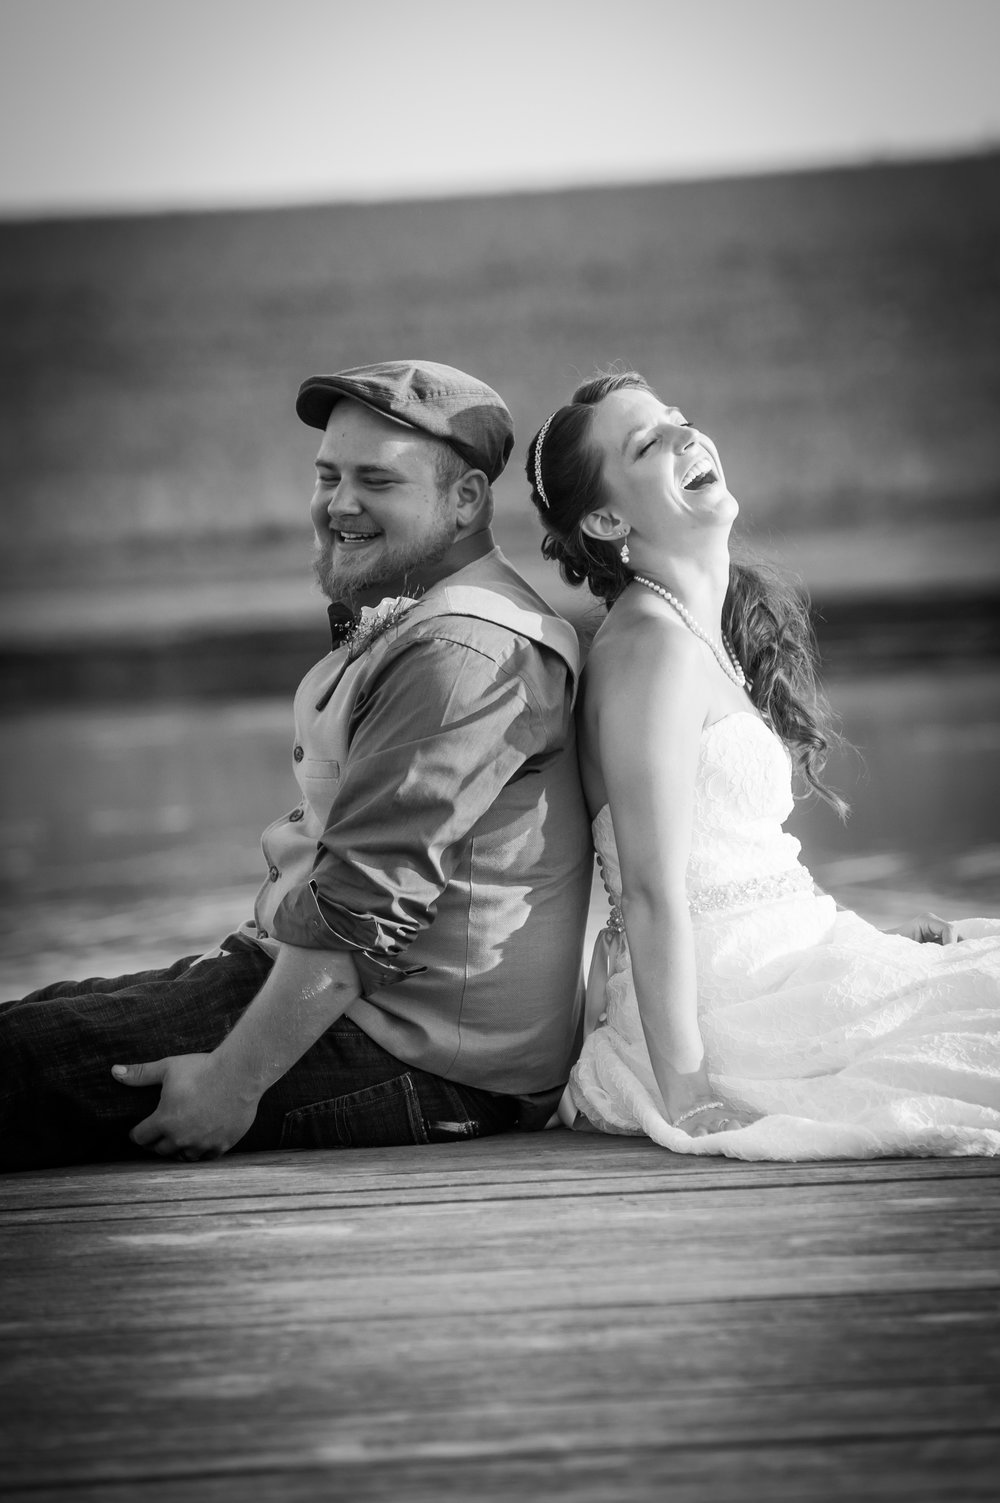 Photographed at Lakefield Weddings, Manheim PA